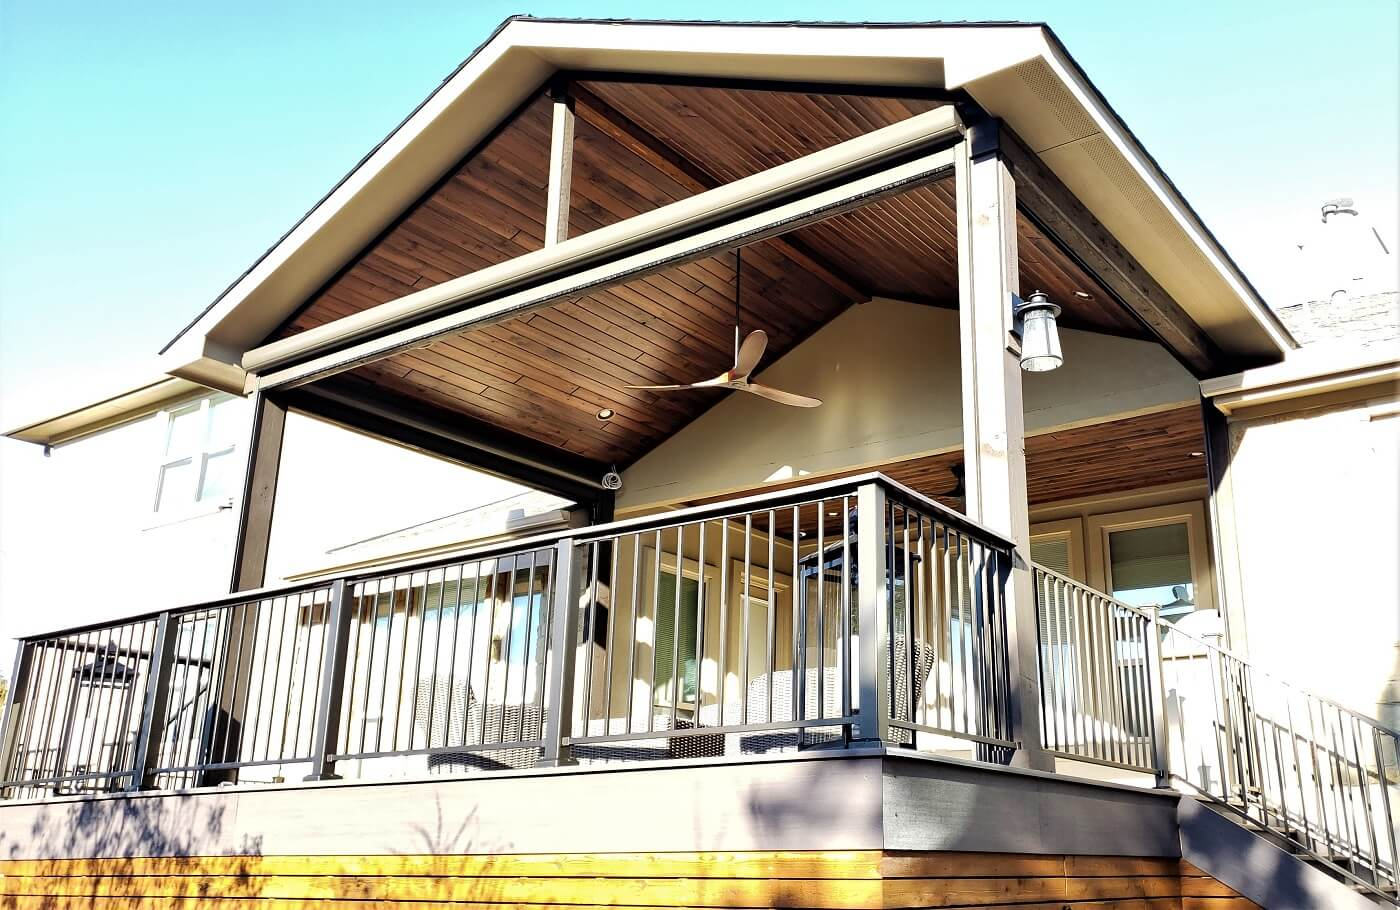 Covered porch and deck with railing